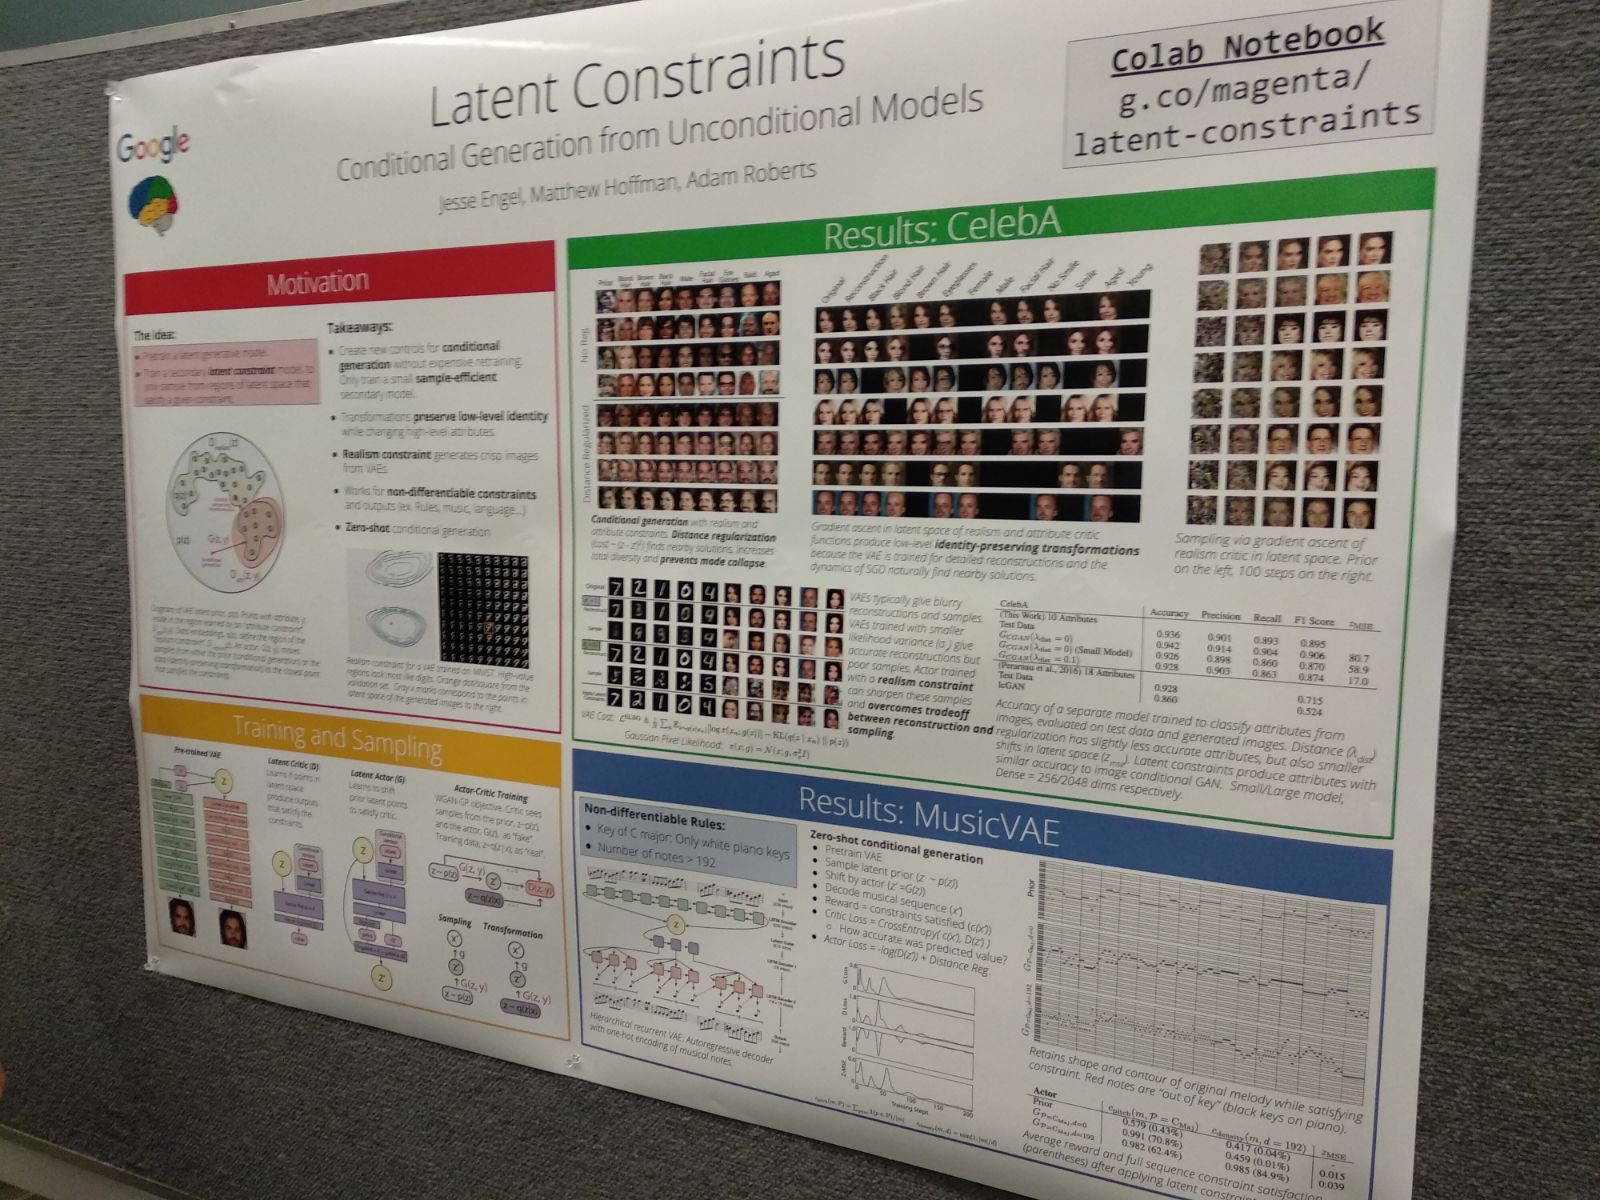 Latent Constraints